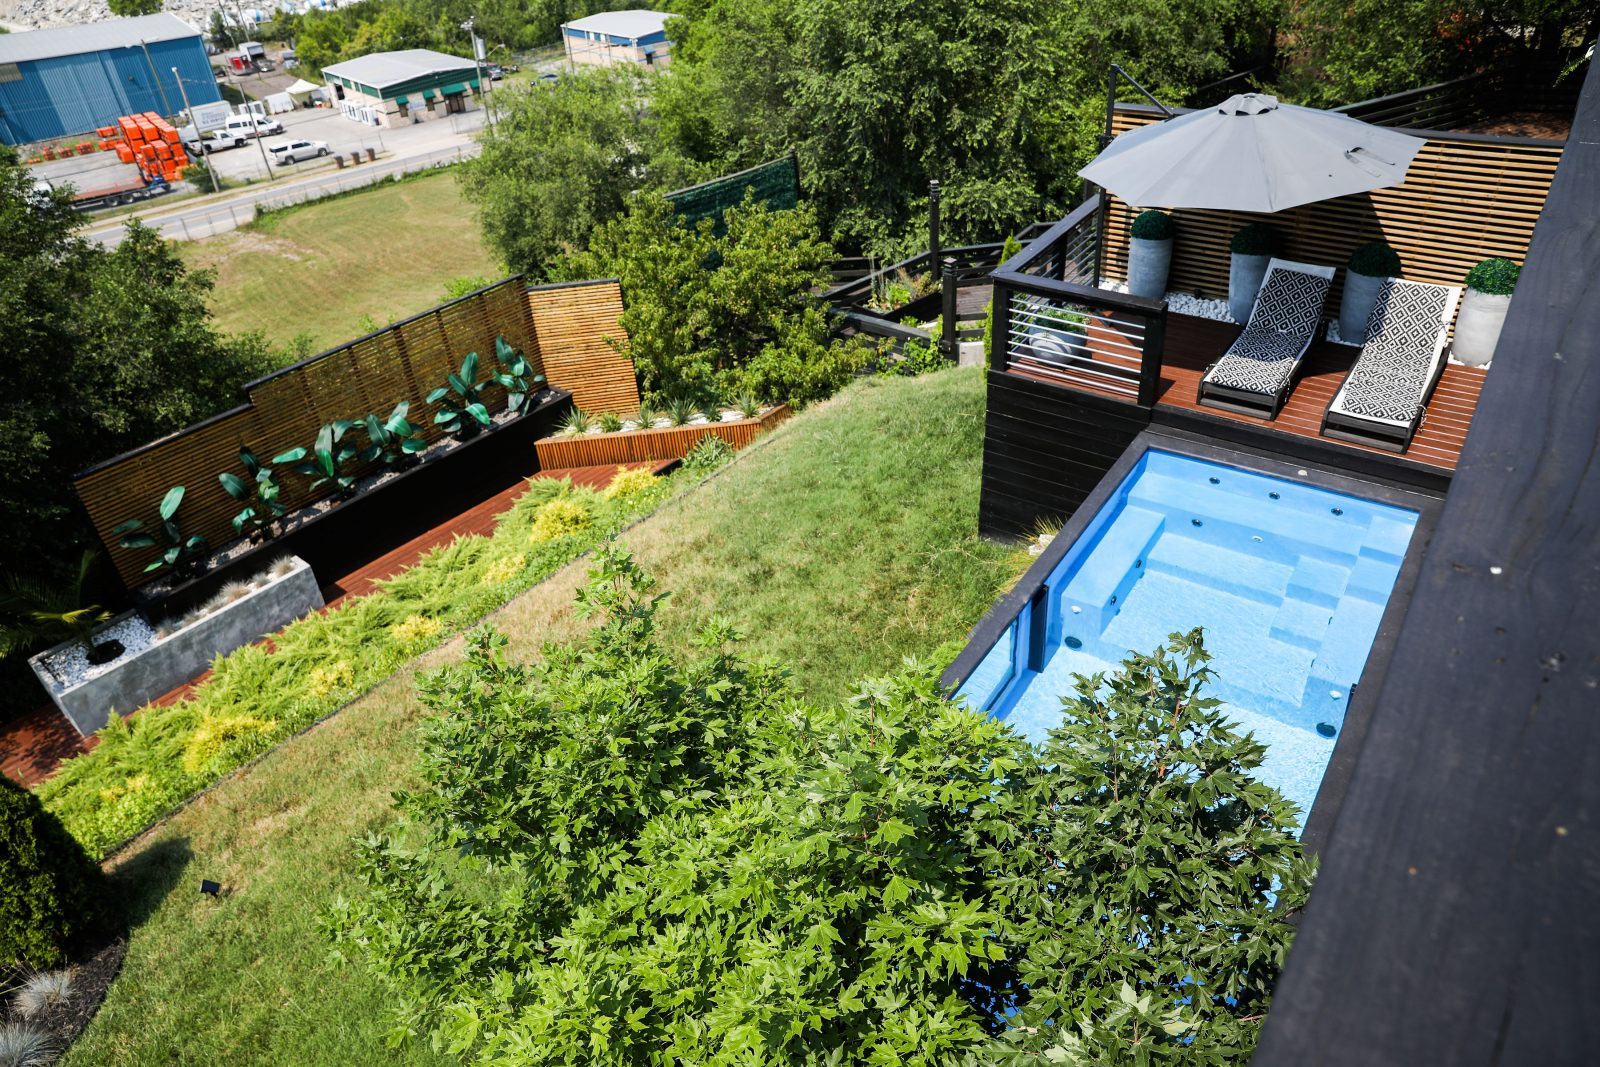 Brooke and brice gilliam house east nashville outdoor pool deck small backyard